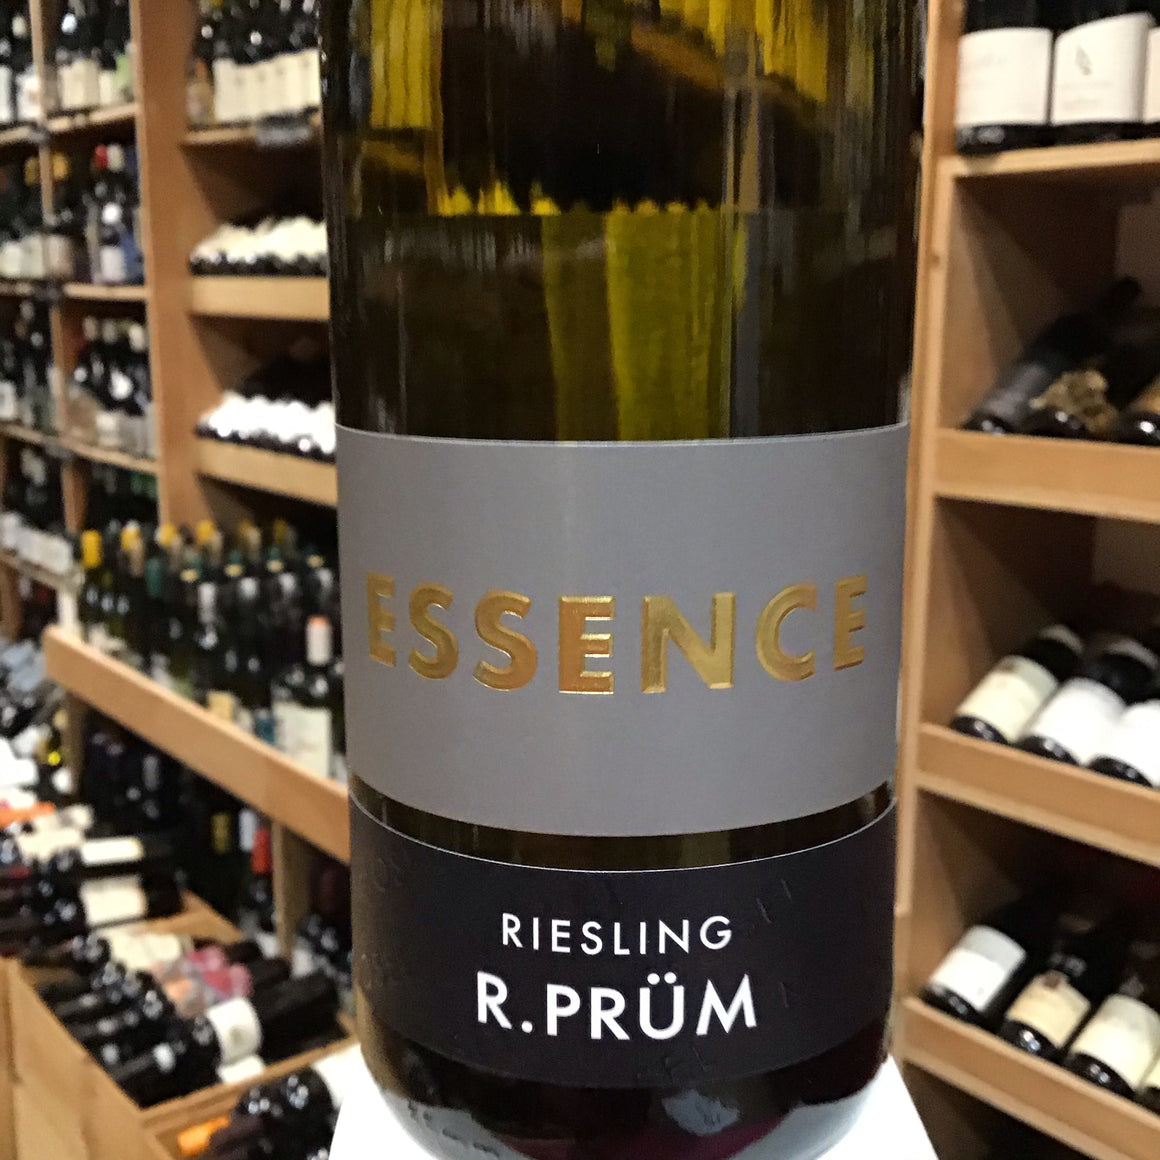 S A Prum Essence Riesling 2018 - Butlers Wine Cellar Brighton